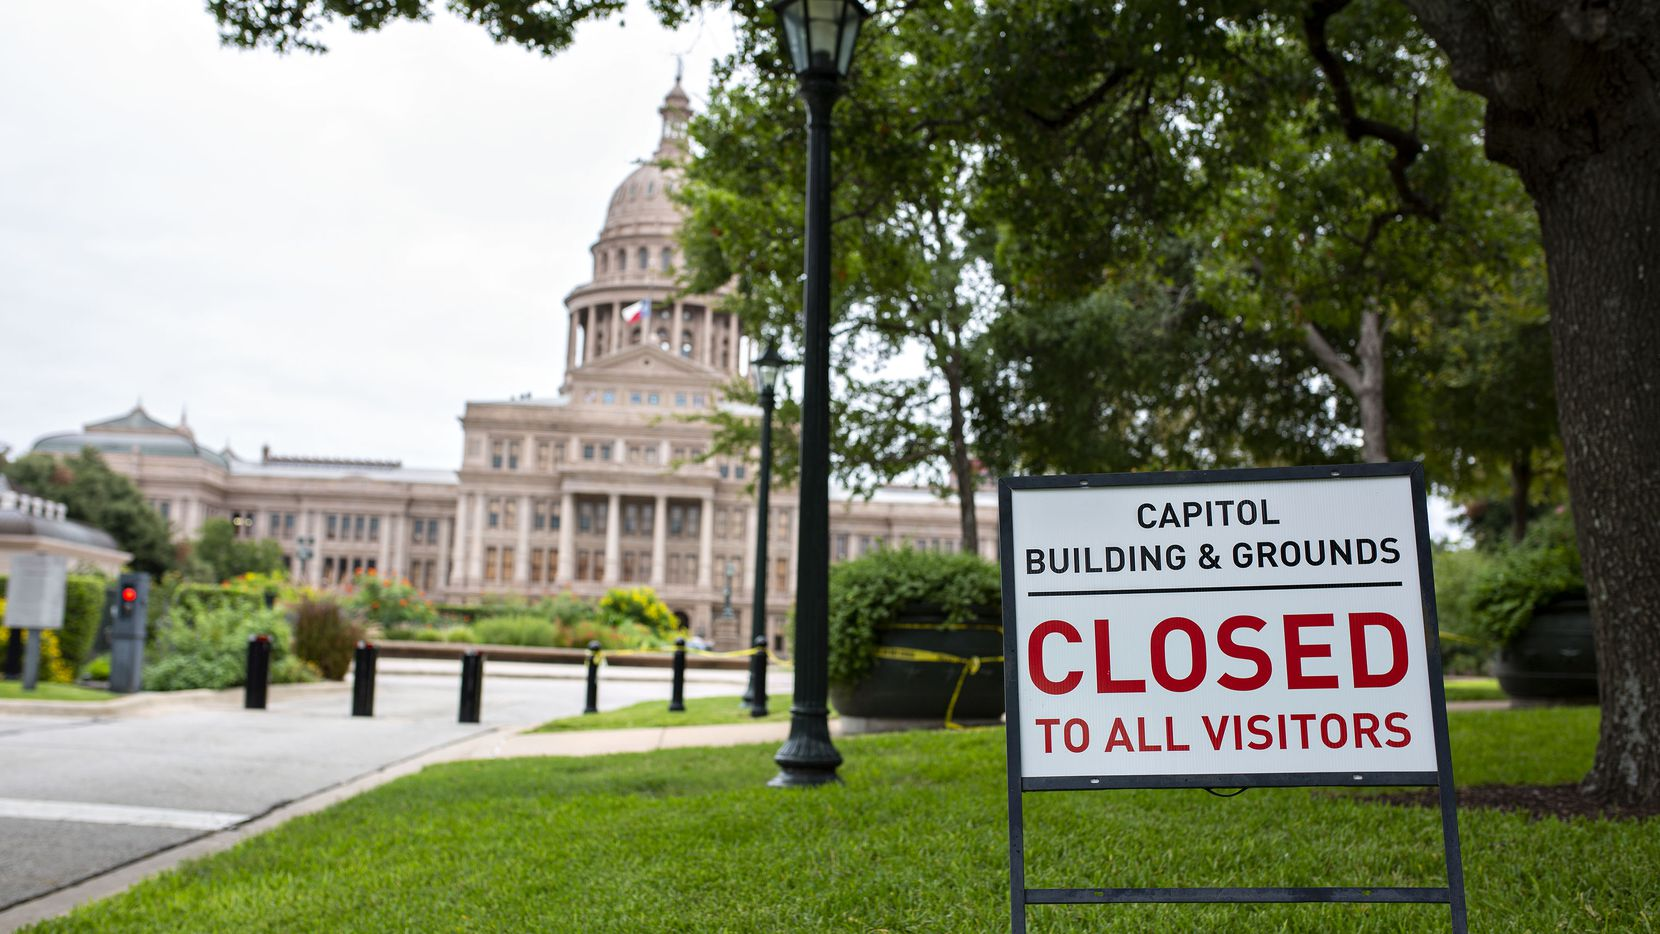 Yellow police tape and closed signs dot the grounds of the Texas Capitol in Austin, still closed to visitors because of the COVID-19 pandemic. While plexiglass dividers and 10 sanitizing machines have been procured, plans for how the 2021 Legislature will be conducted remain the subject of intense speculation. A veteran lobbyist says the Senate will use only two of about 15 committee rooms as a way to ensure safety and order -- but also create peer pressure to narrow the session's agenda.